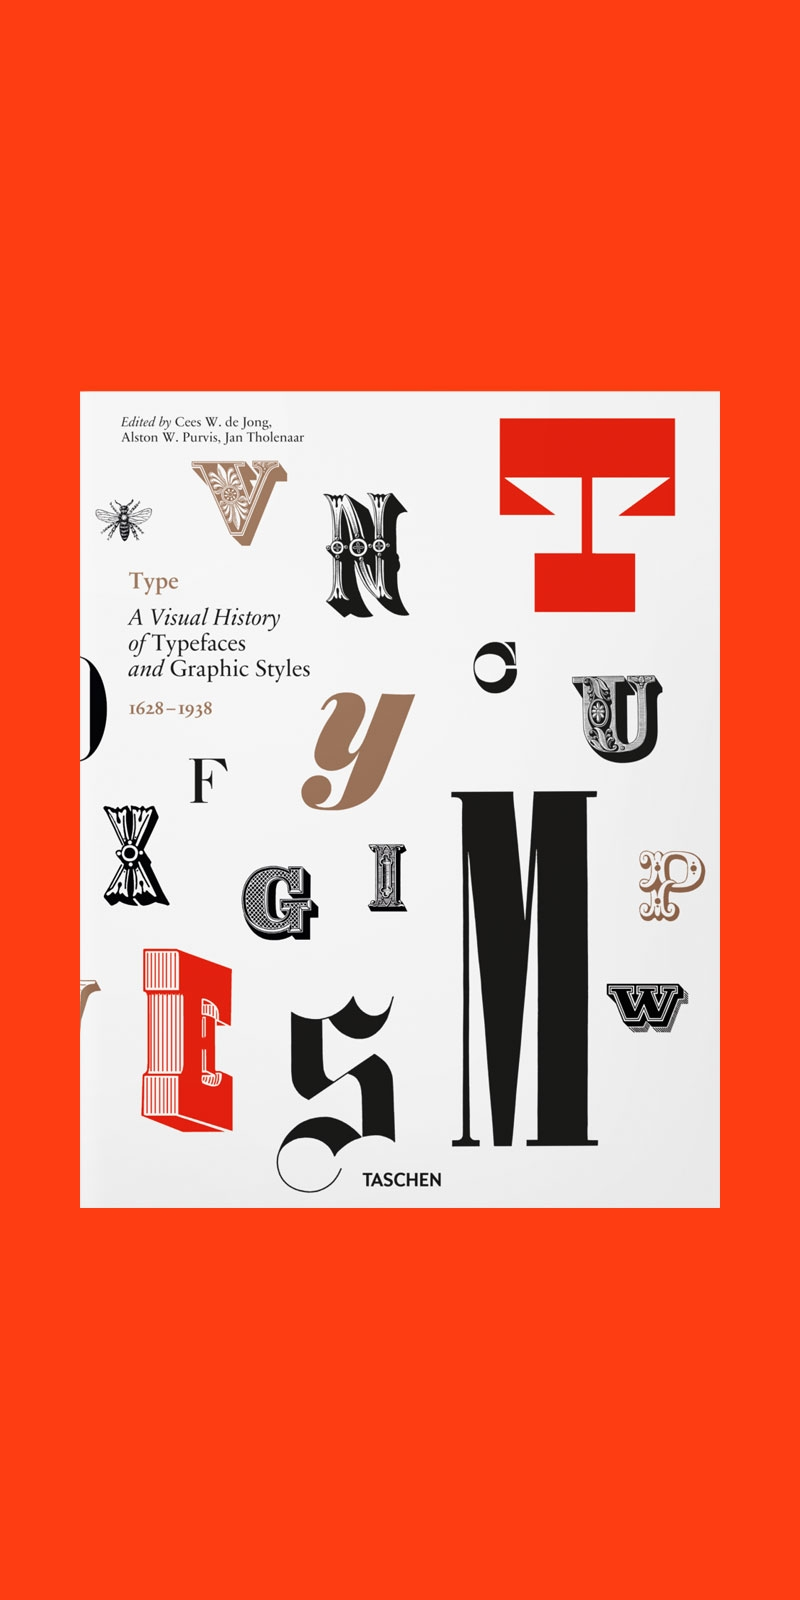 Type: A Visual History of Typefaces and Graphic Styles 1623-1938